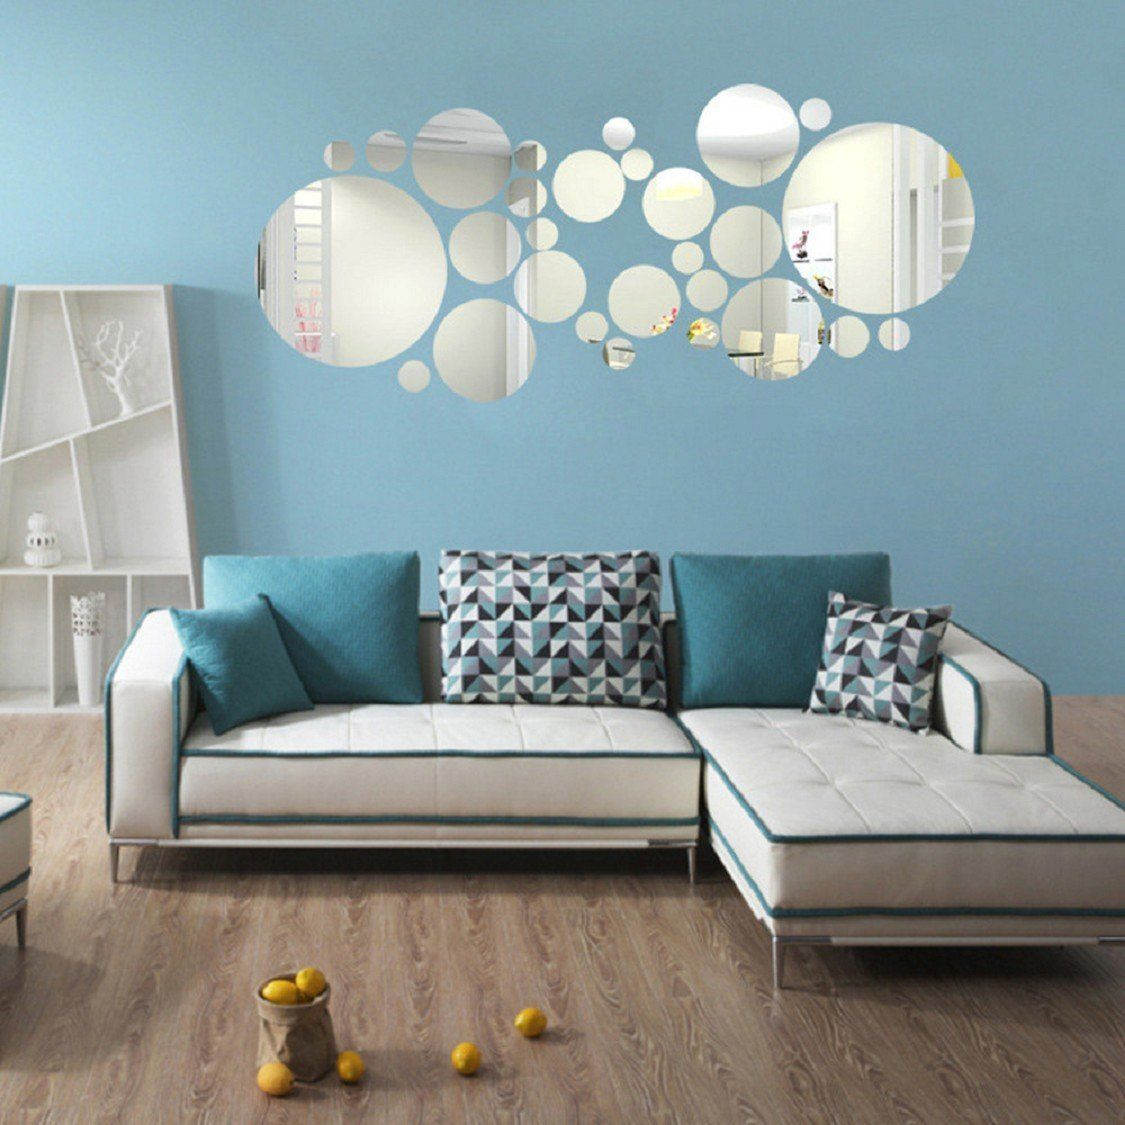 Ikevan set pcs acrylic art modern d mirror round wall stickers